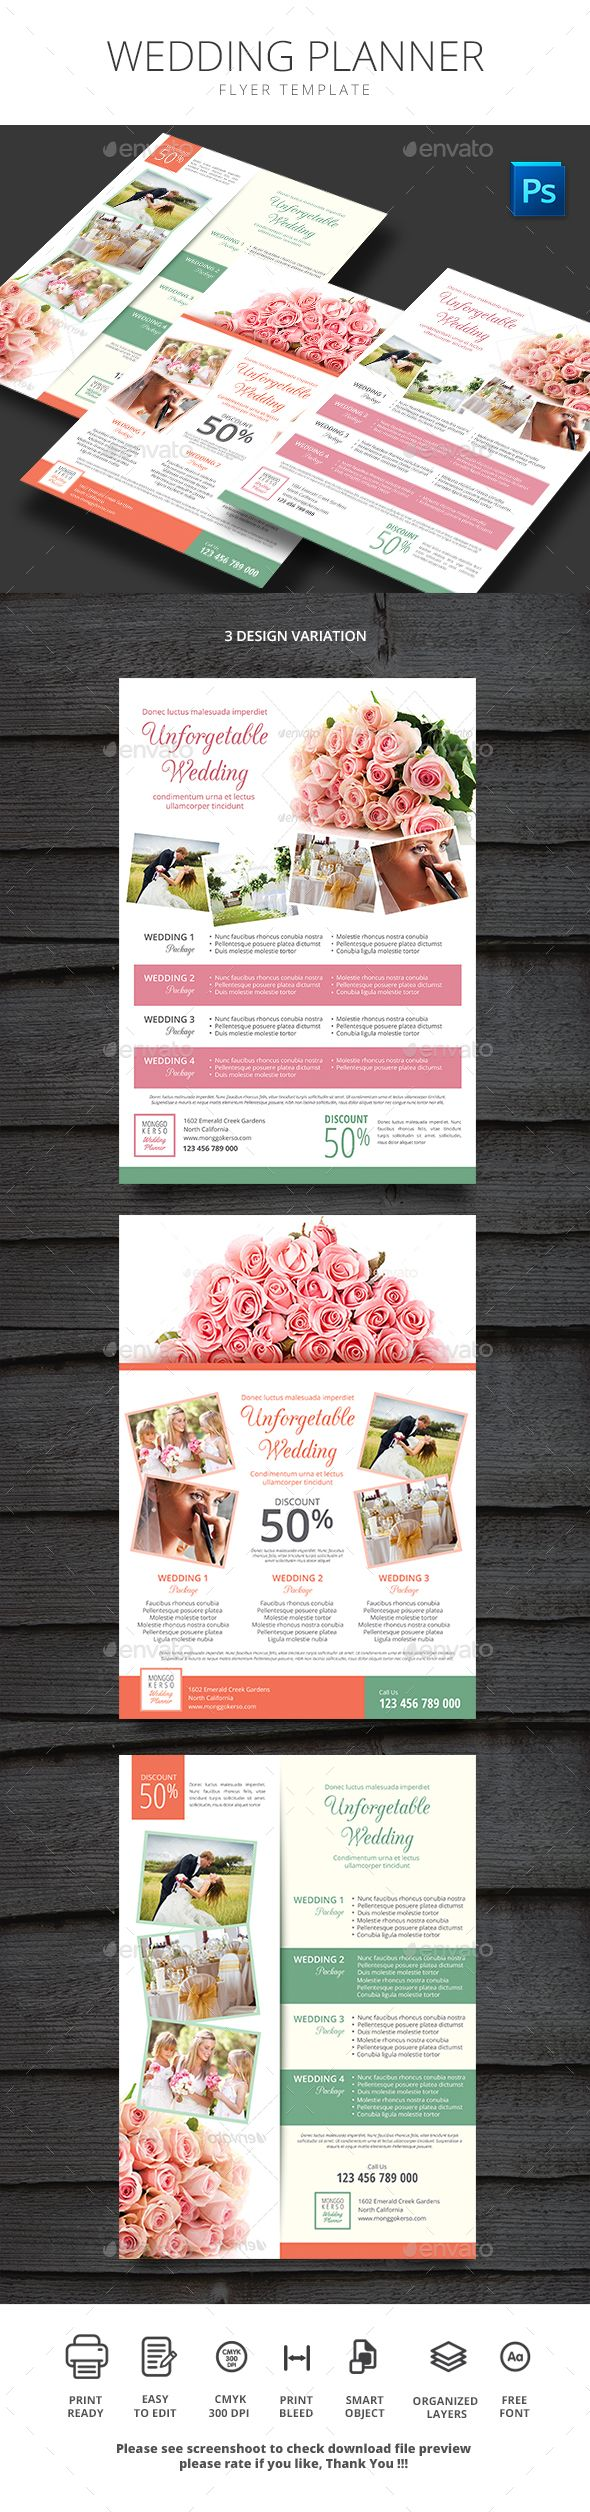 wedding planning checklist spreadsheet free%0A Wedding Planner